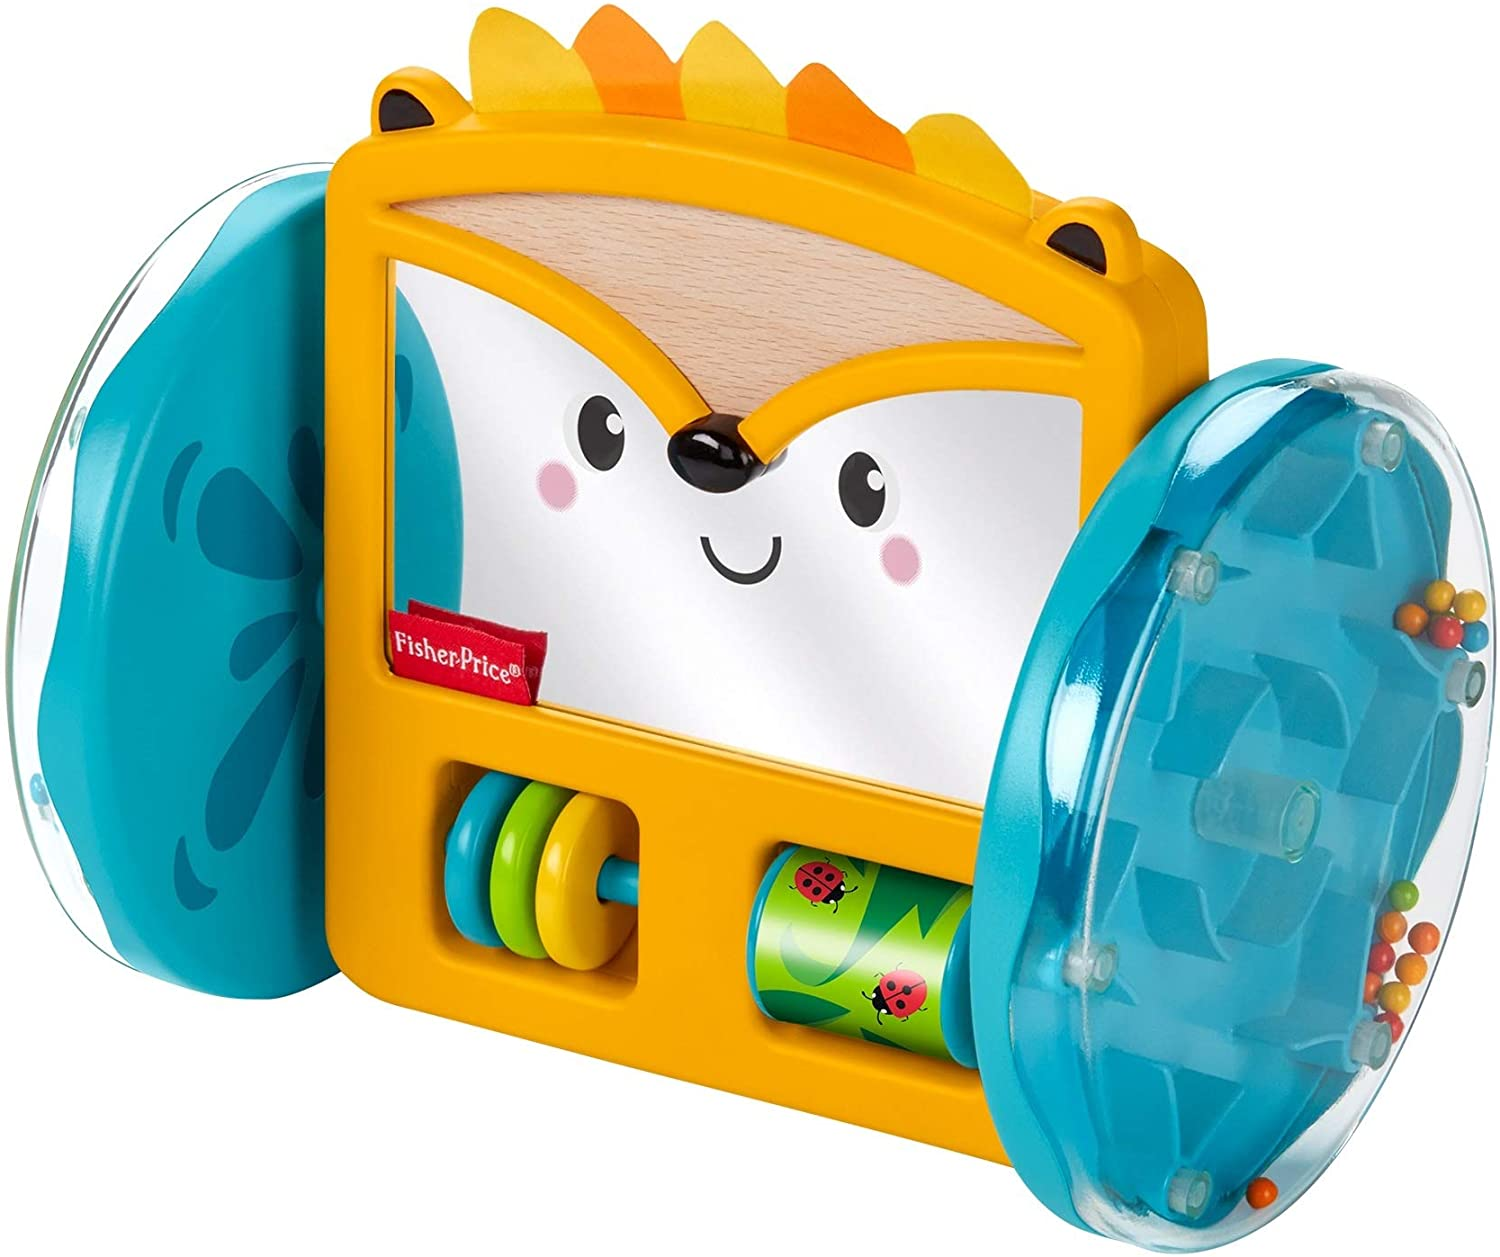 Price Play & Crawl Hedgehog Mirror